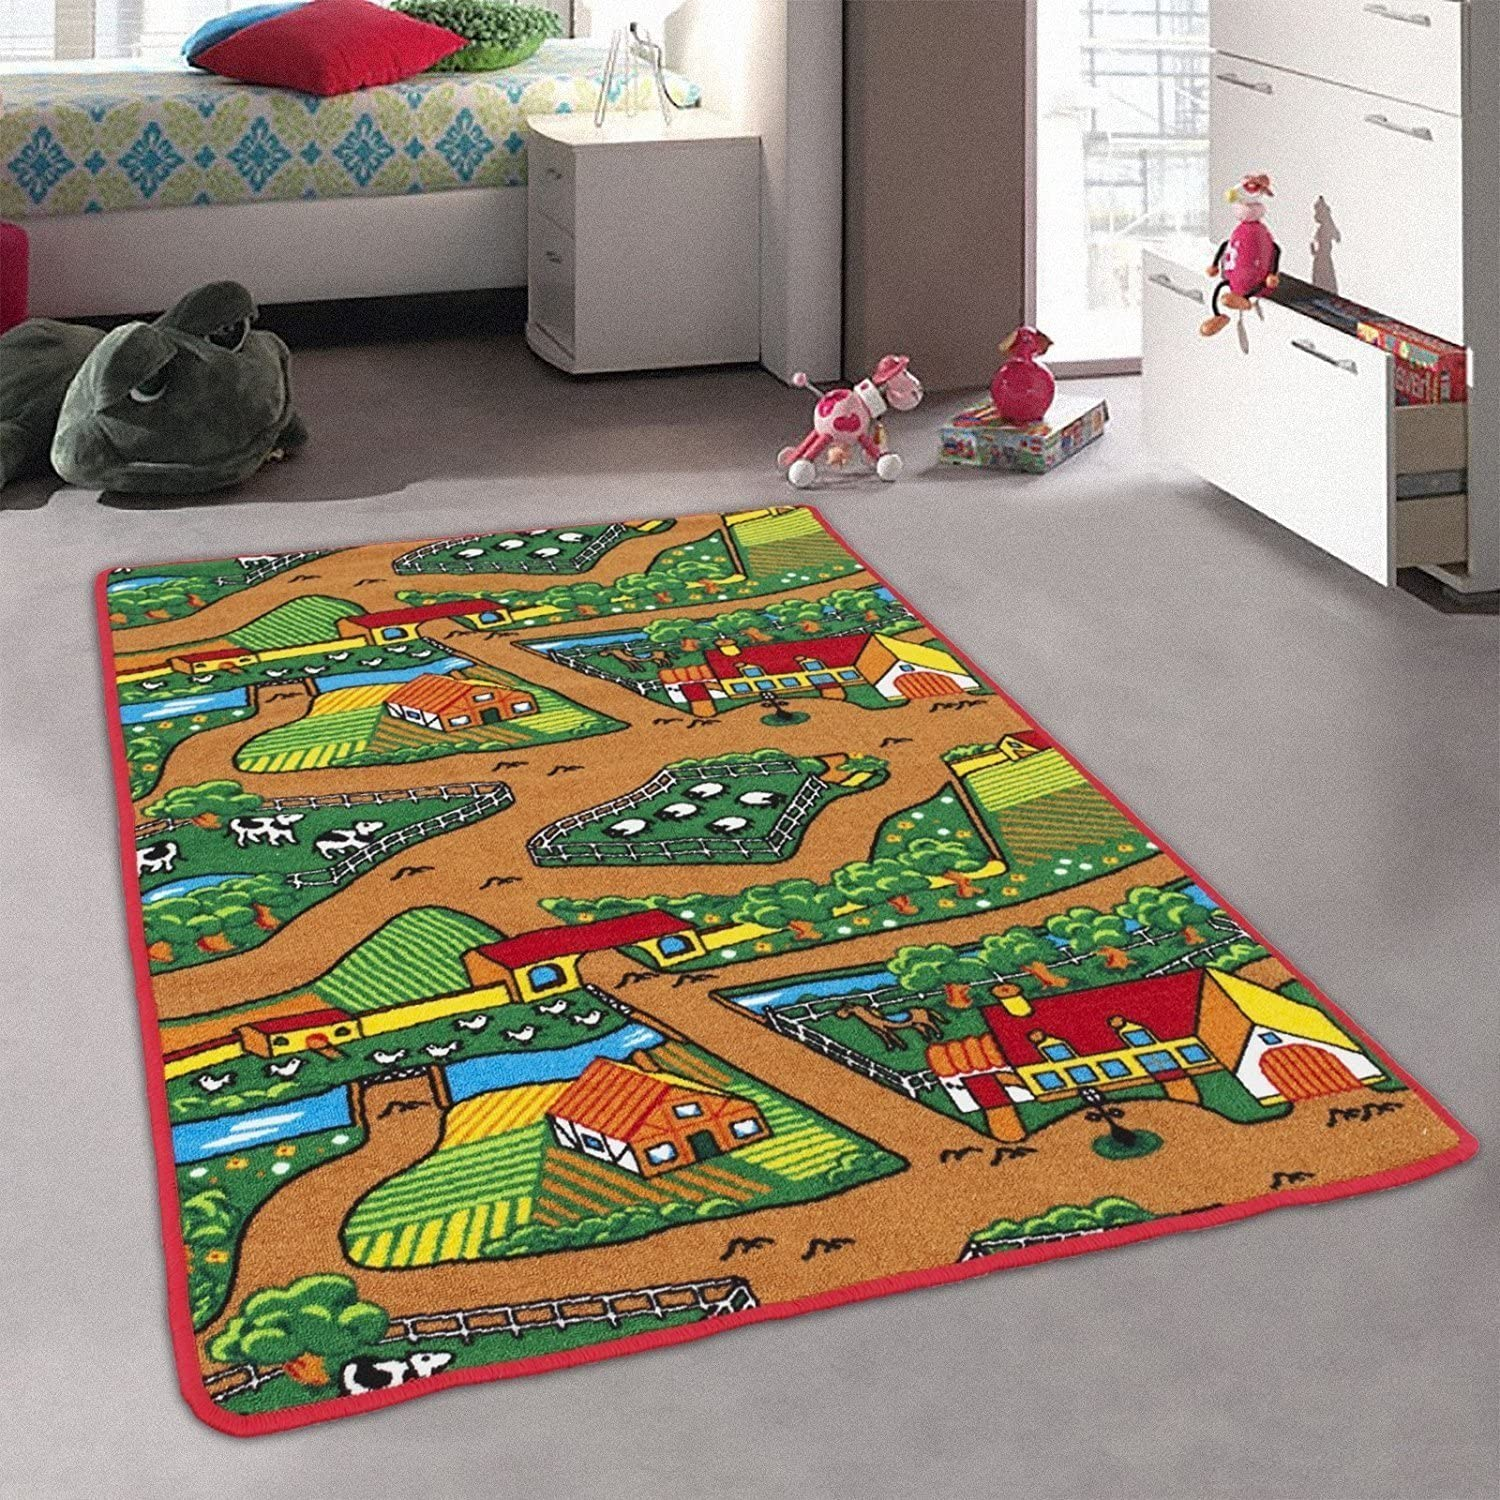 Amazon Com Champion Rugs Kids Baby Room Area Rug Farm Farmer Landscape With Bright Colorful Vibrant Colors 5 Feet X 7 Feet Toys Games